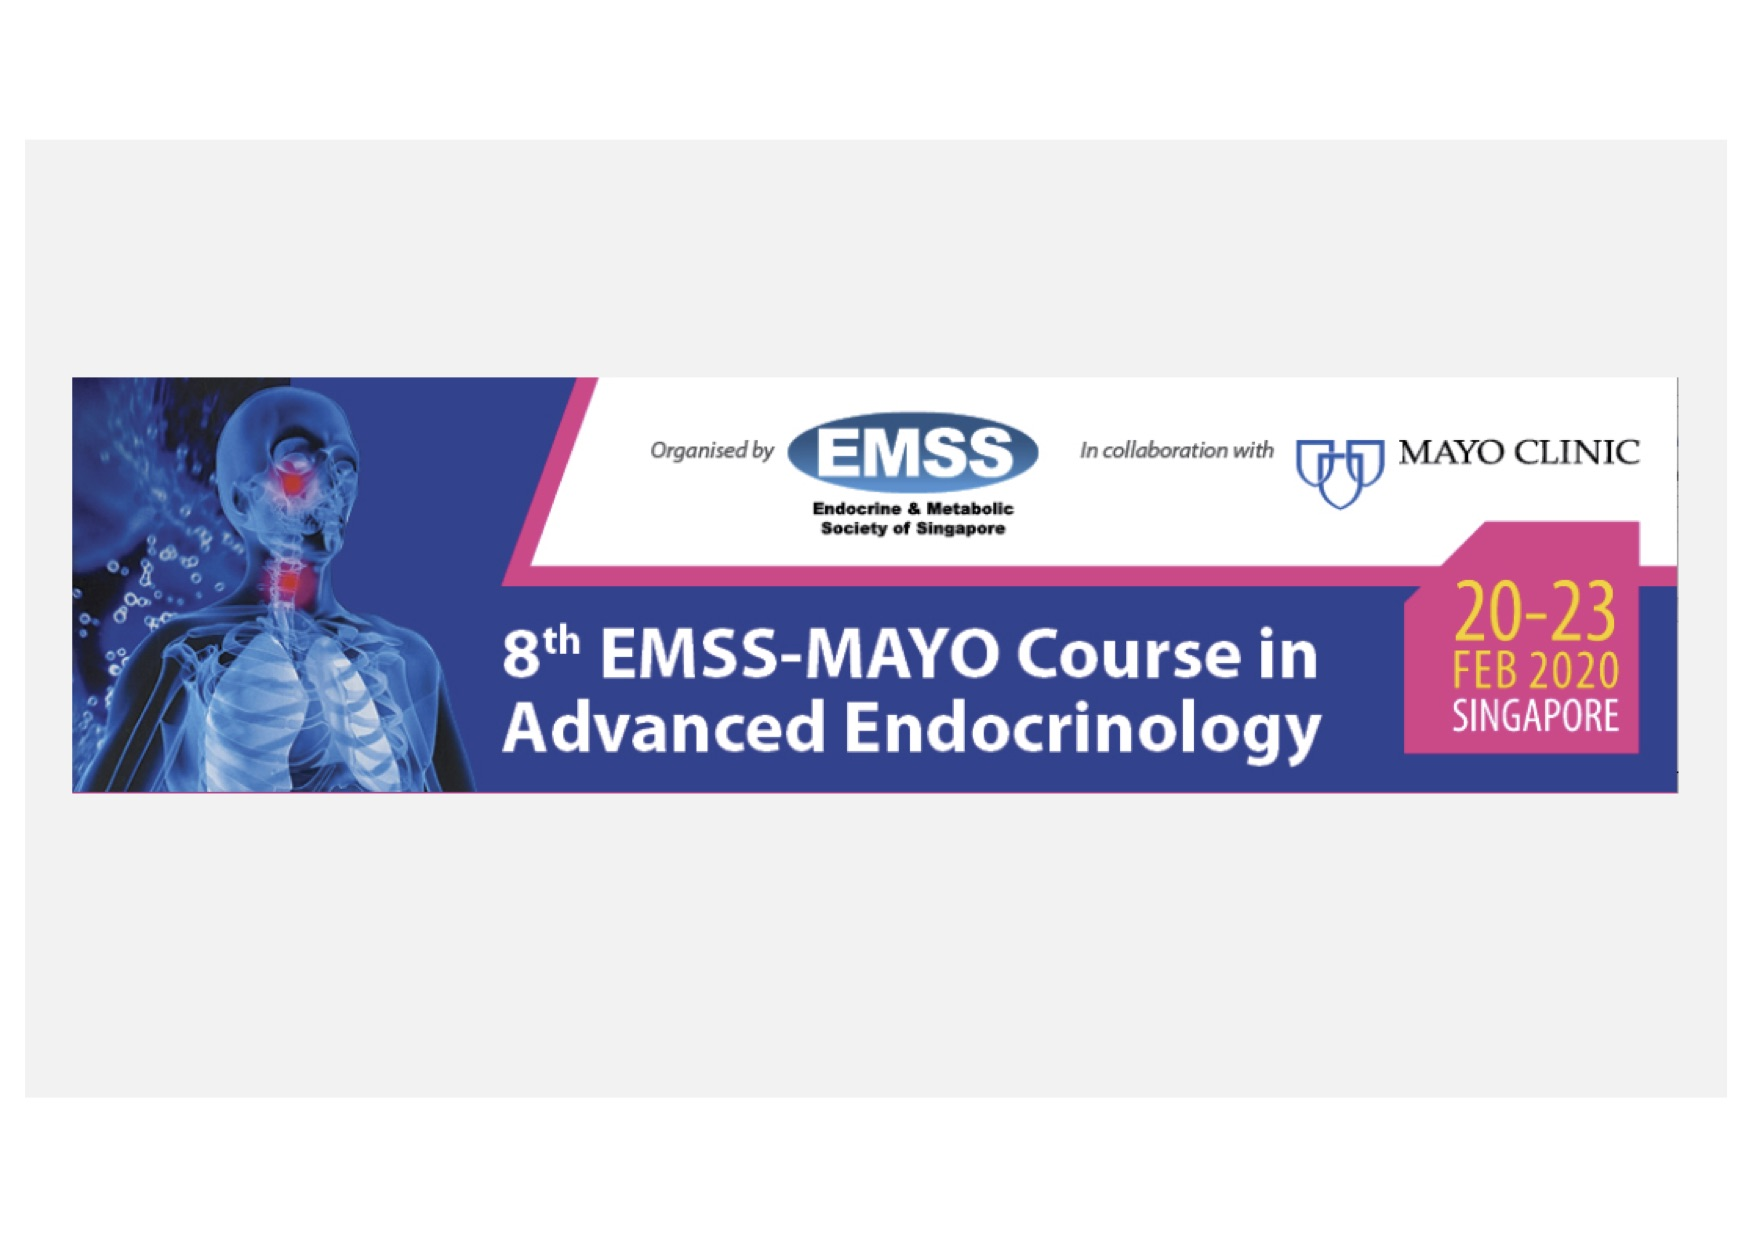 Endocrine and Metabolic Society of Singapore (EMSS